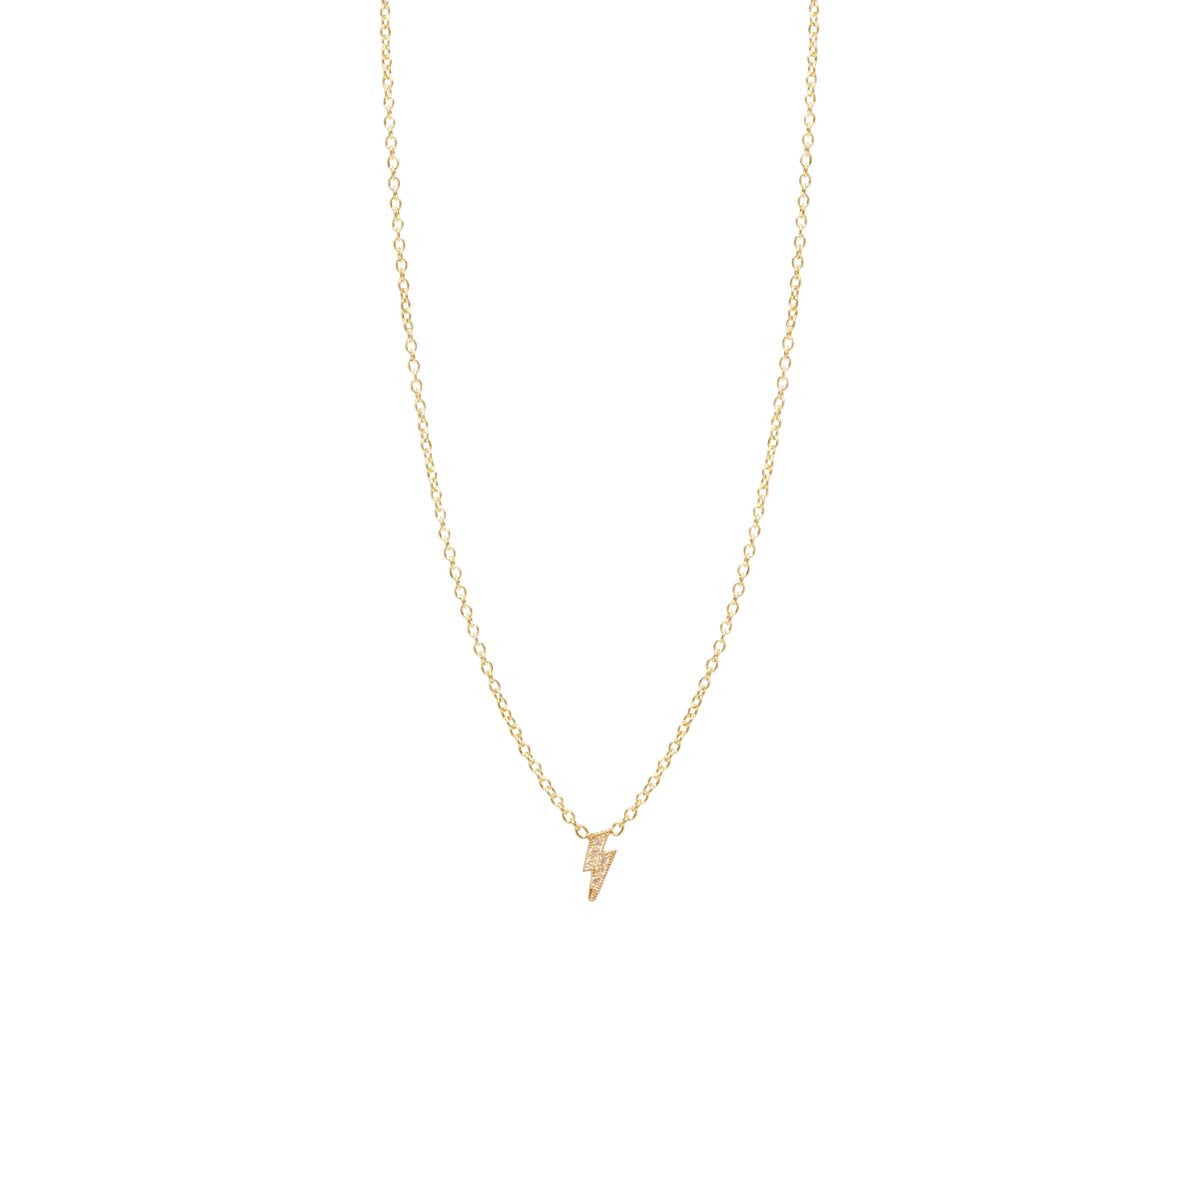 a8bf02d86b9f2 14k itty bitty pave diamond lightning bolt necklace